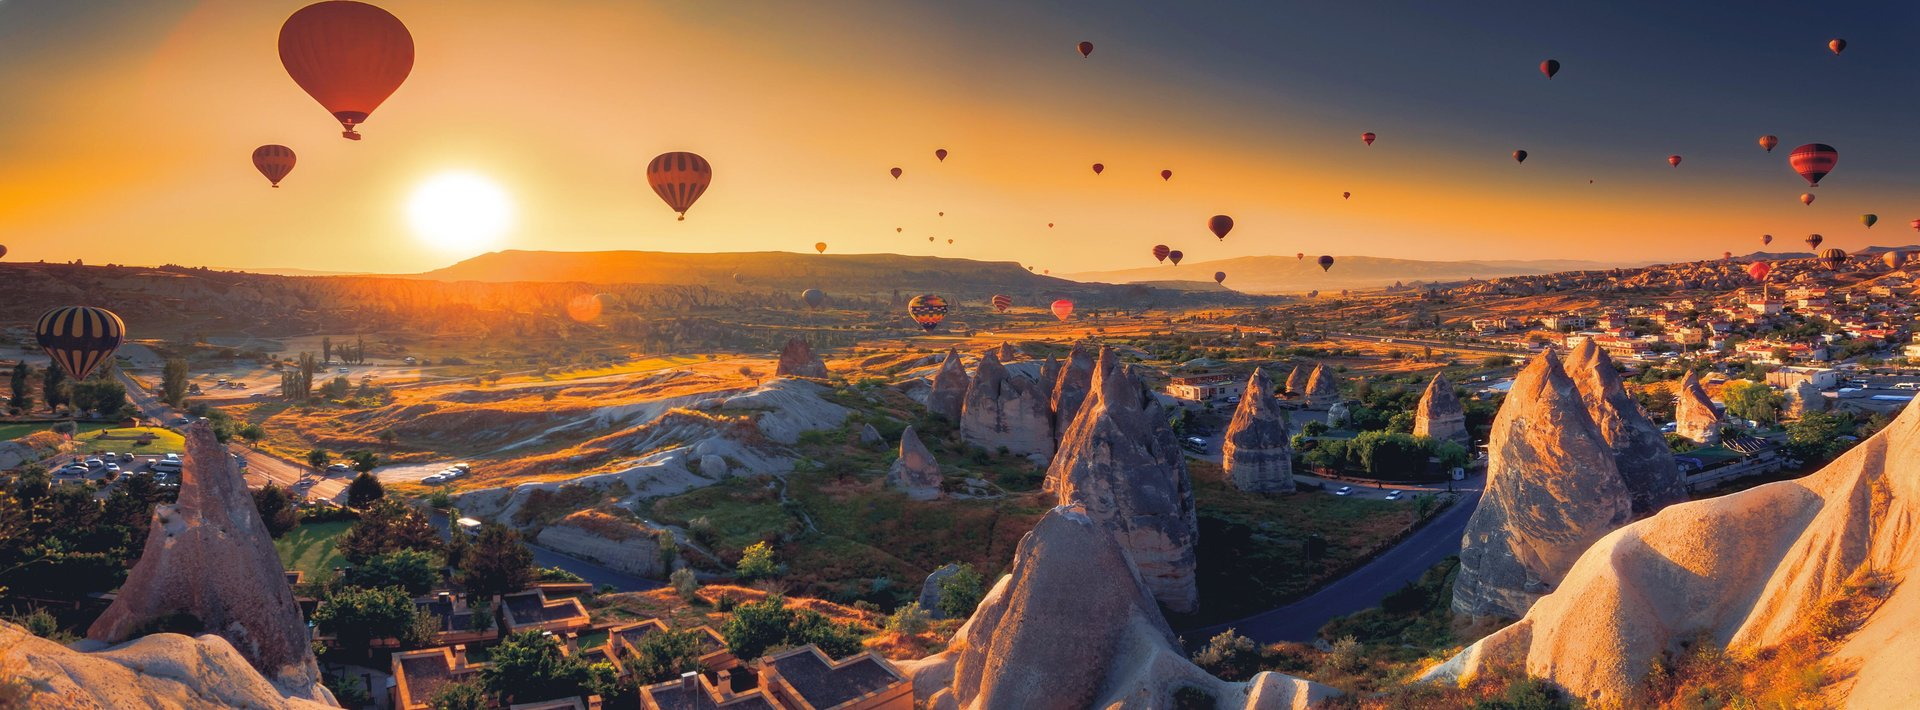 cappadocia_turkey_tour hot air ballons ride